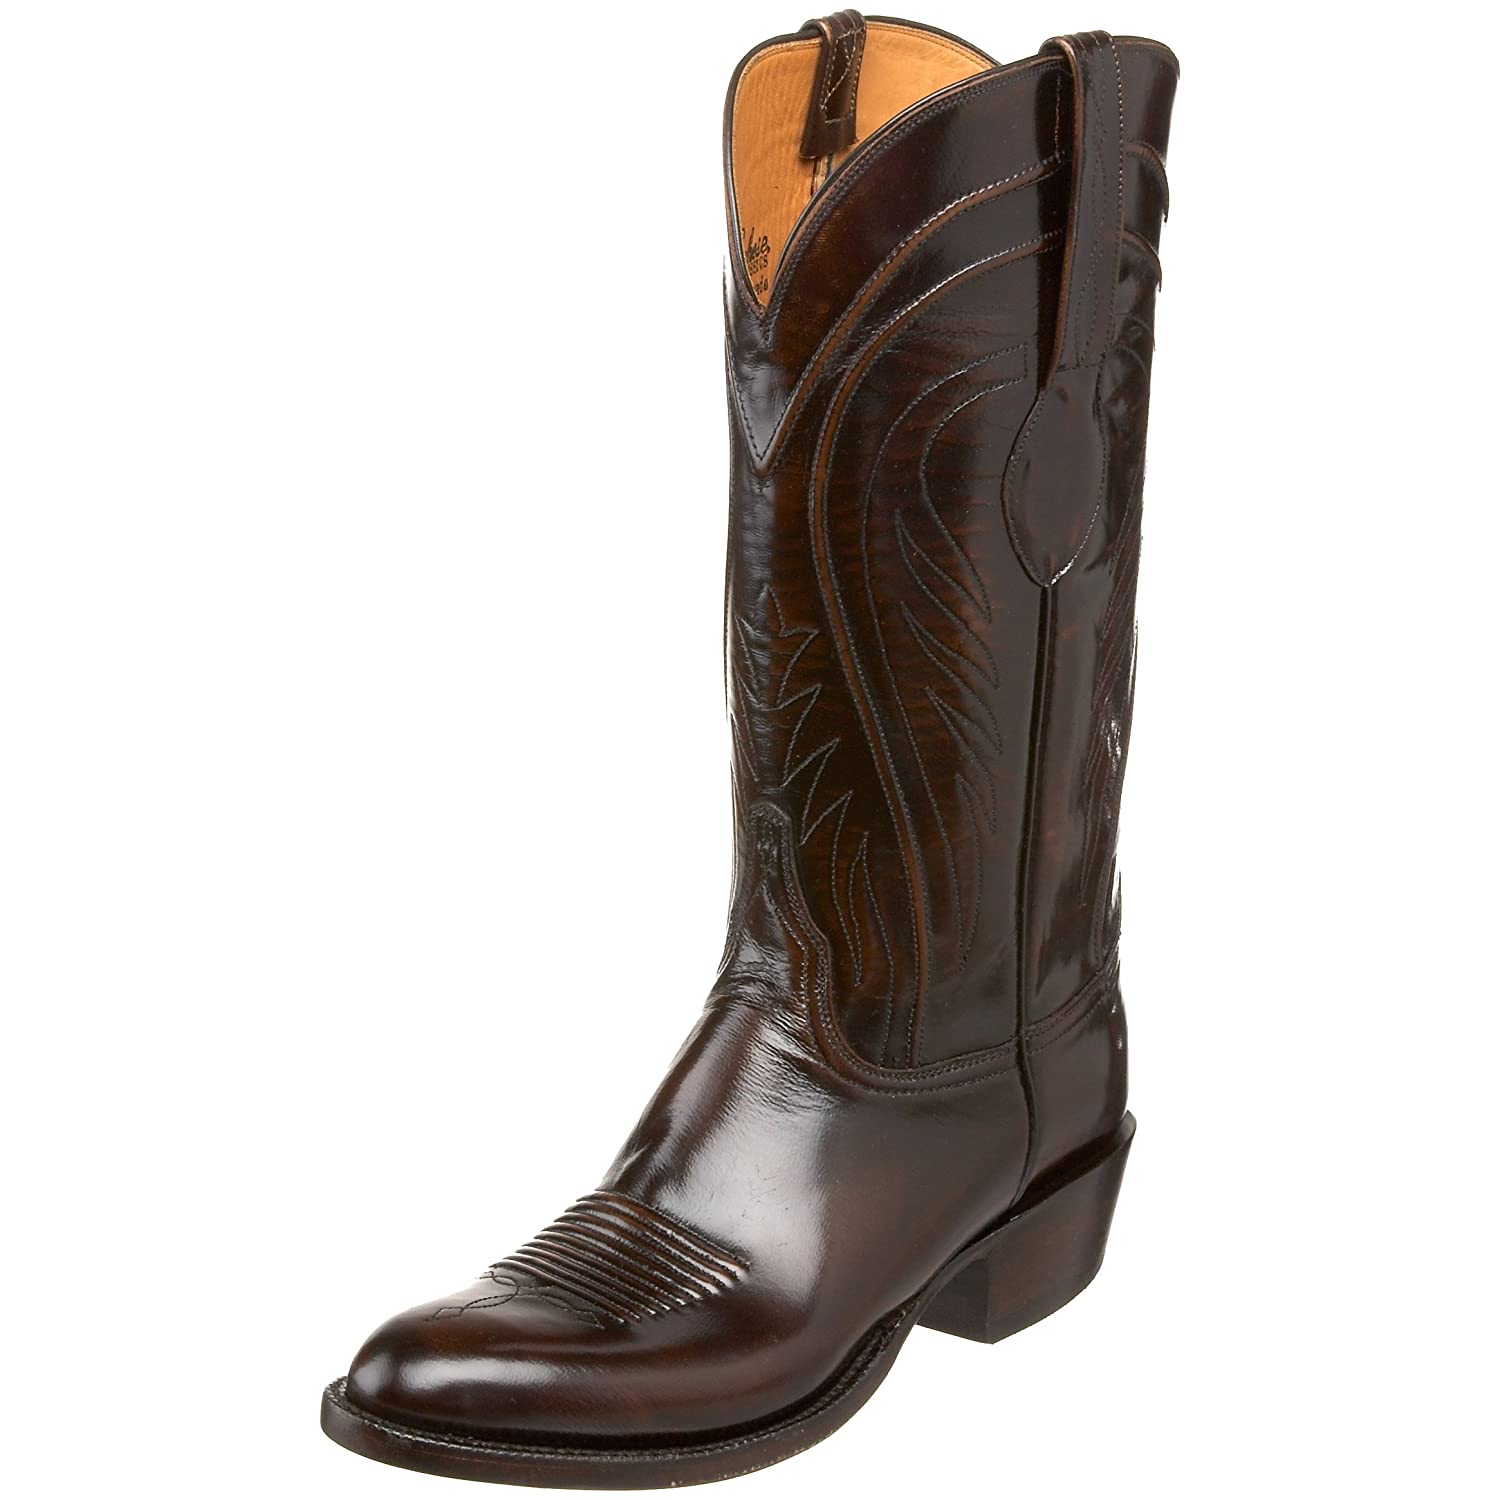 Lucchese Classics Men's L1507.63 Boot,Brown,7.5 EE US